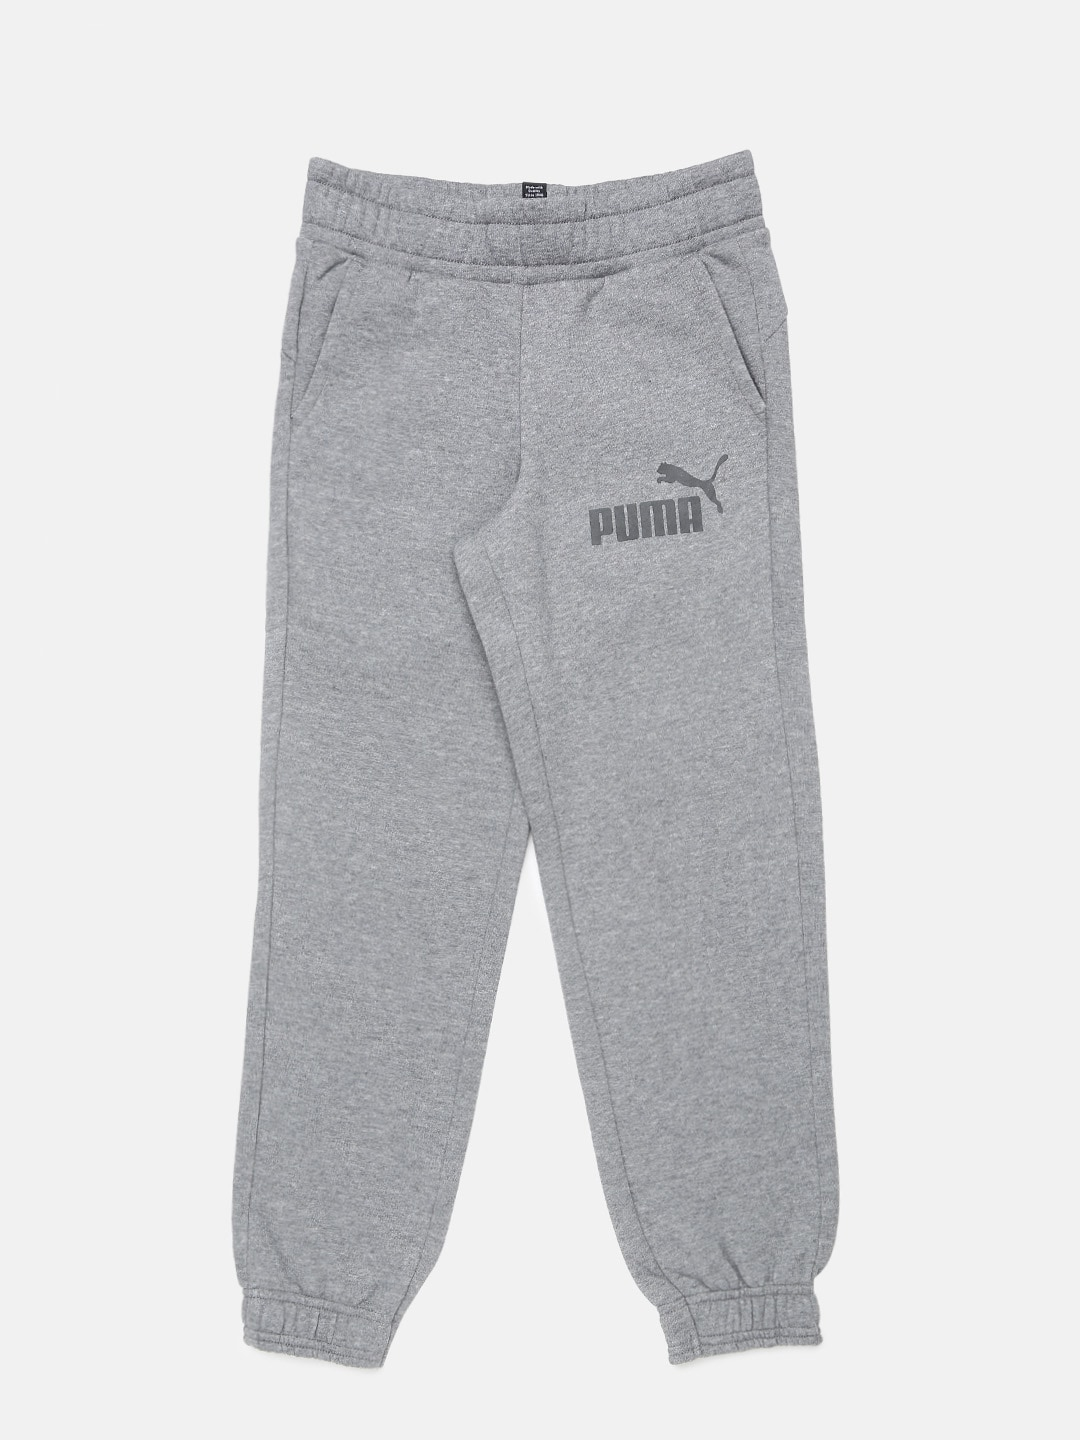 99b4a27d9717 Boys Track Pants- Buy Track Pants for Boys online in India